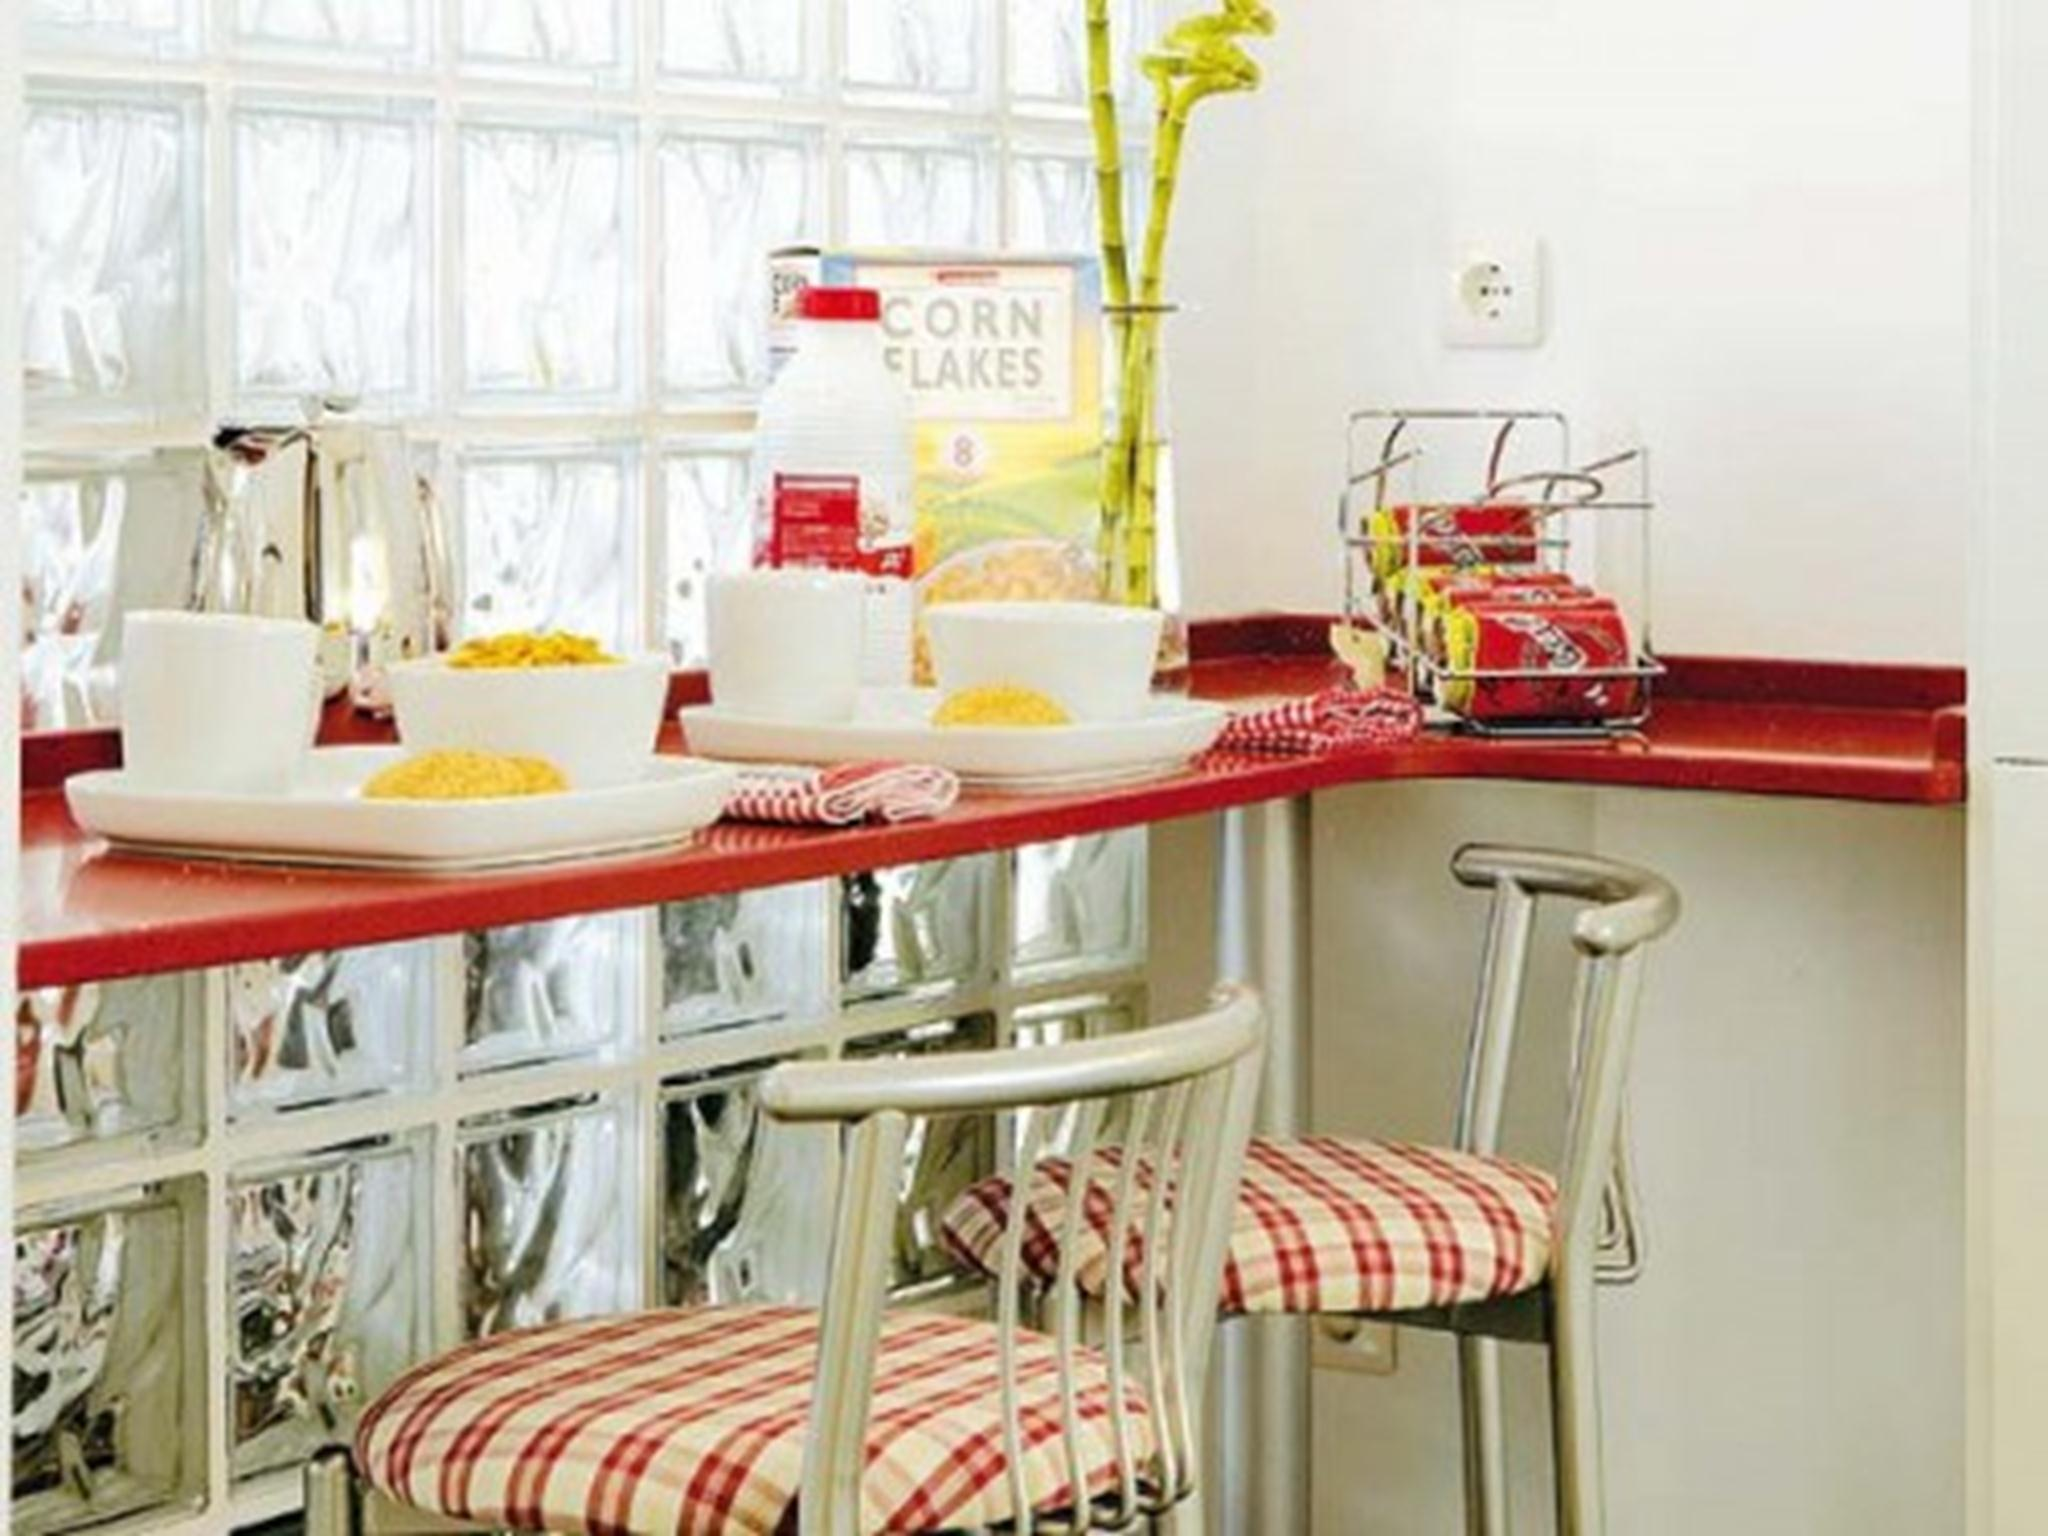 small-tables-for-breakfast-7-500x375 (1) (Copy)